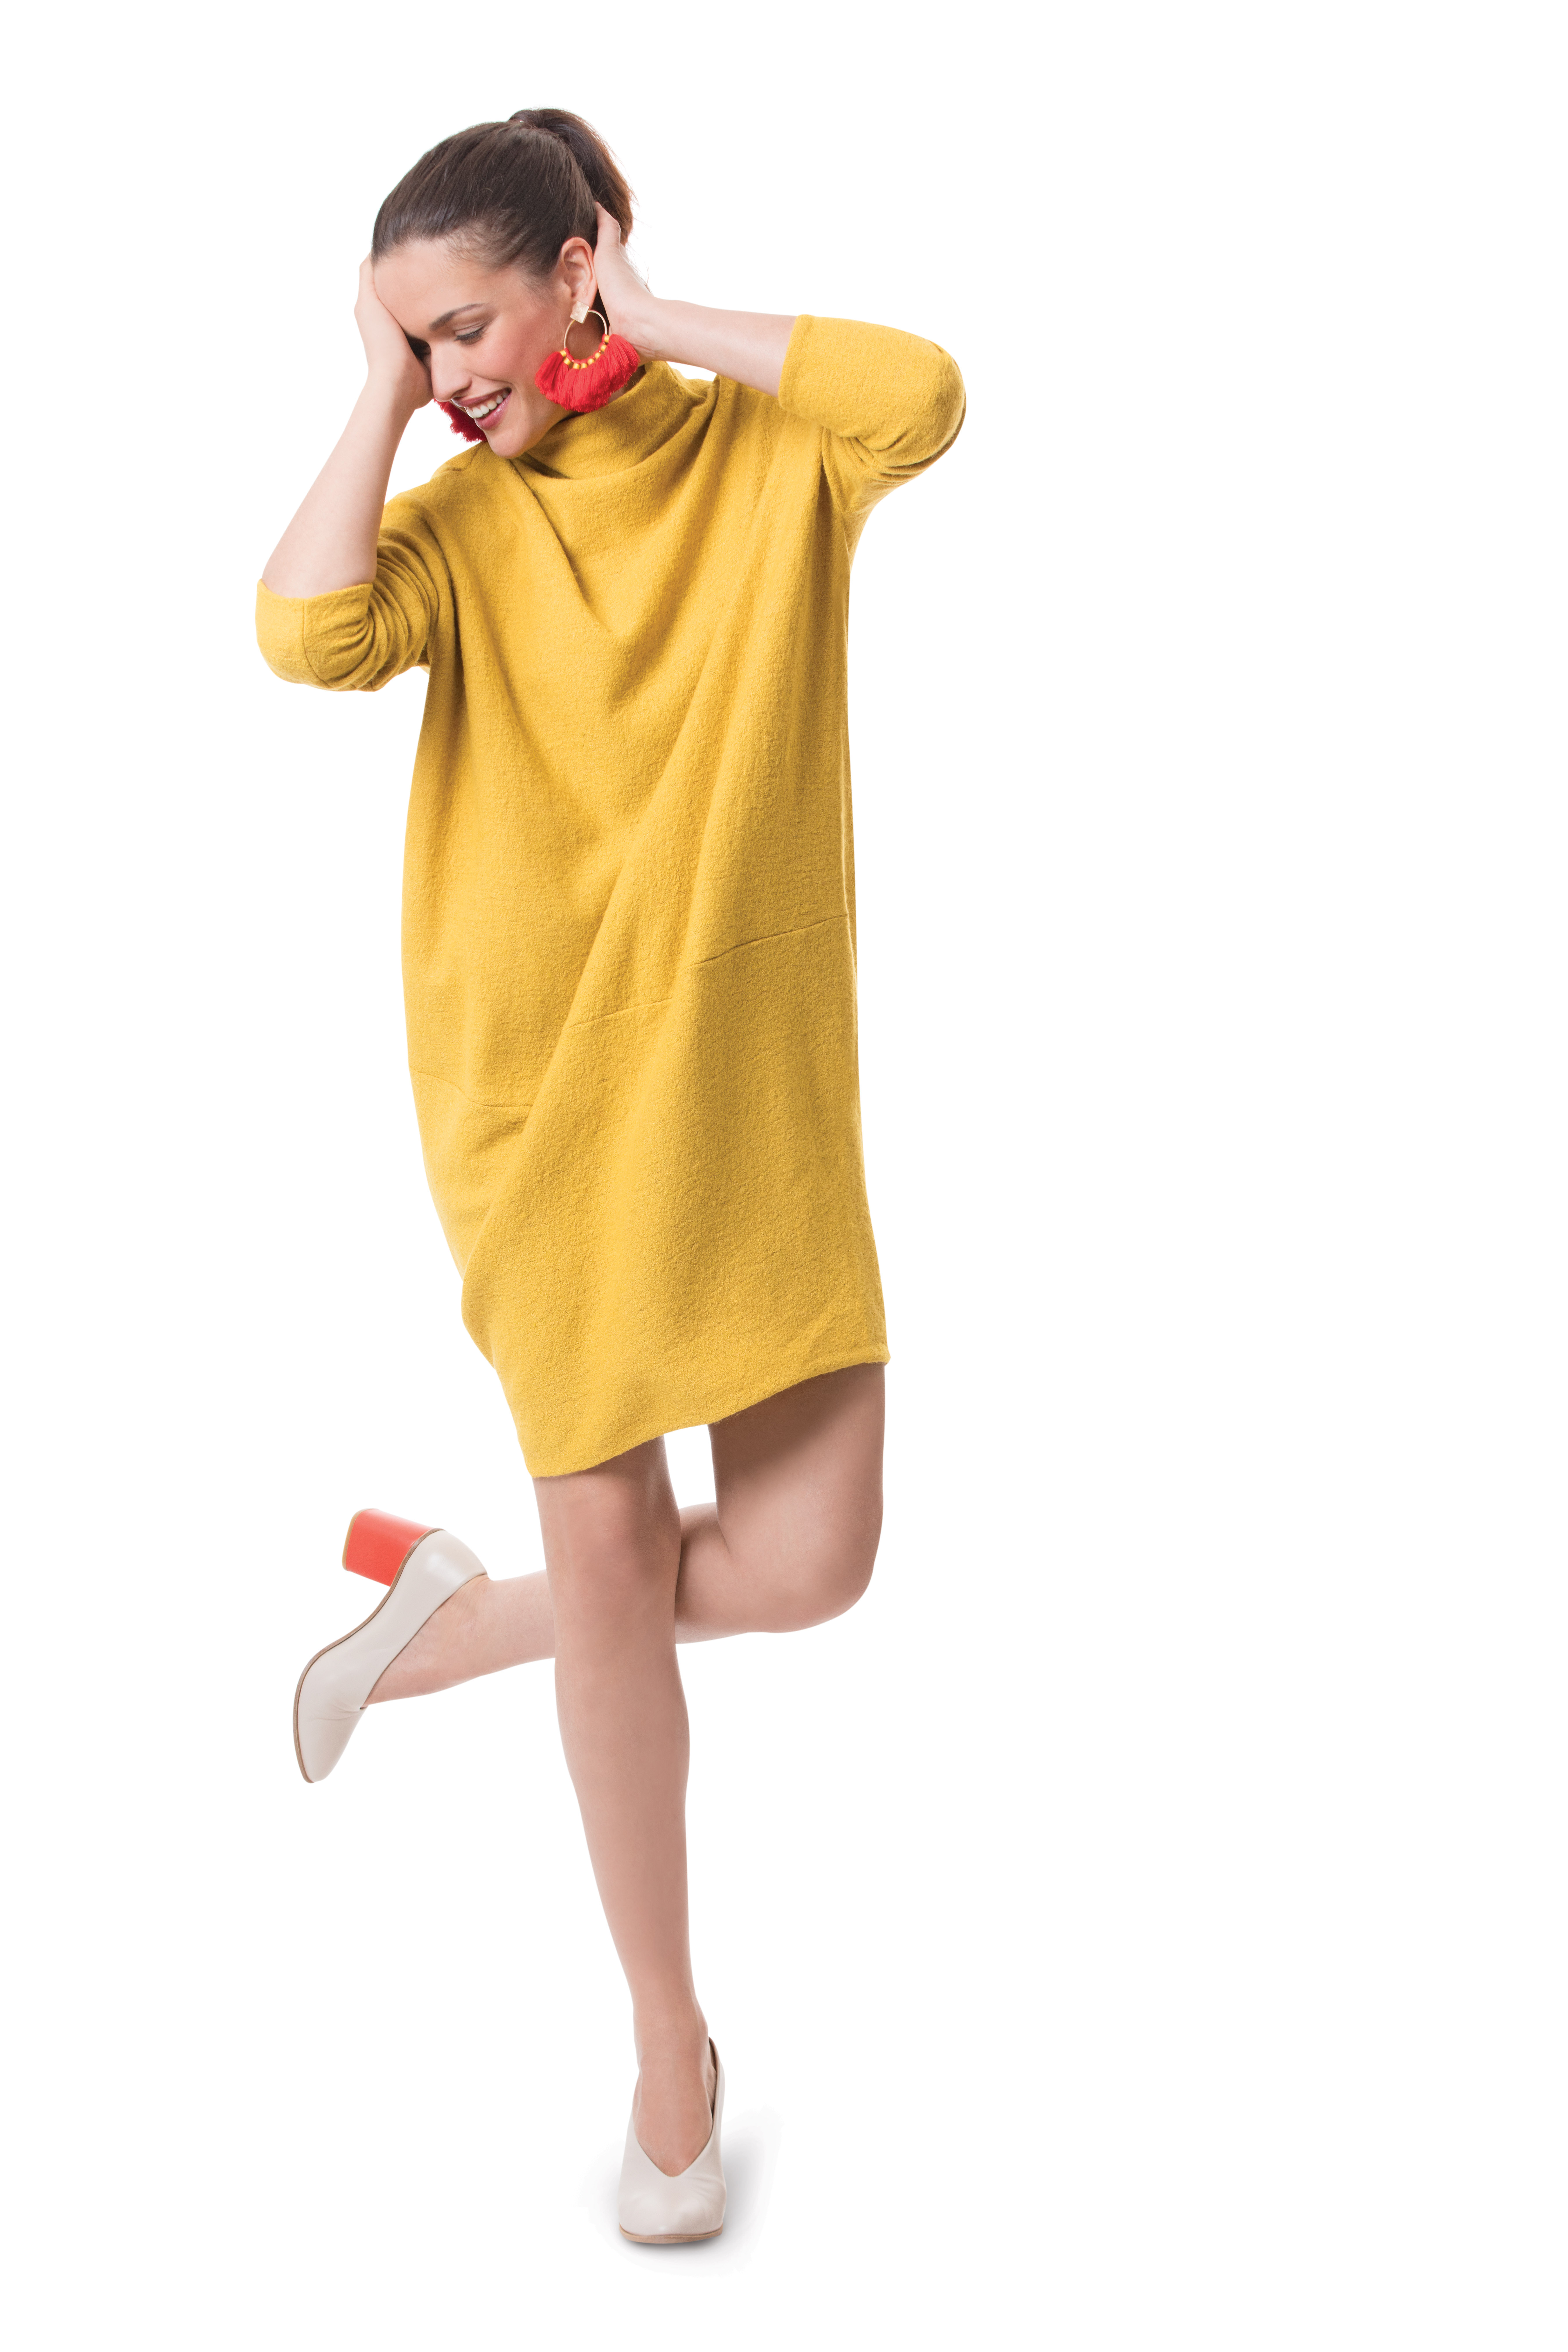 An oversized tunic dress makes comfortable, smart weekend wear a snap. This dress sews up fast, with no fitting required.